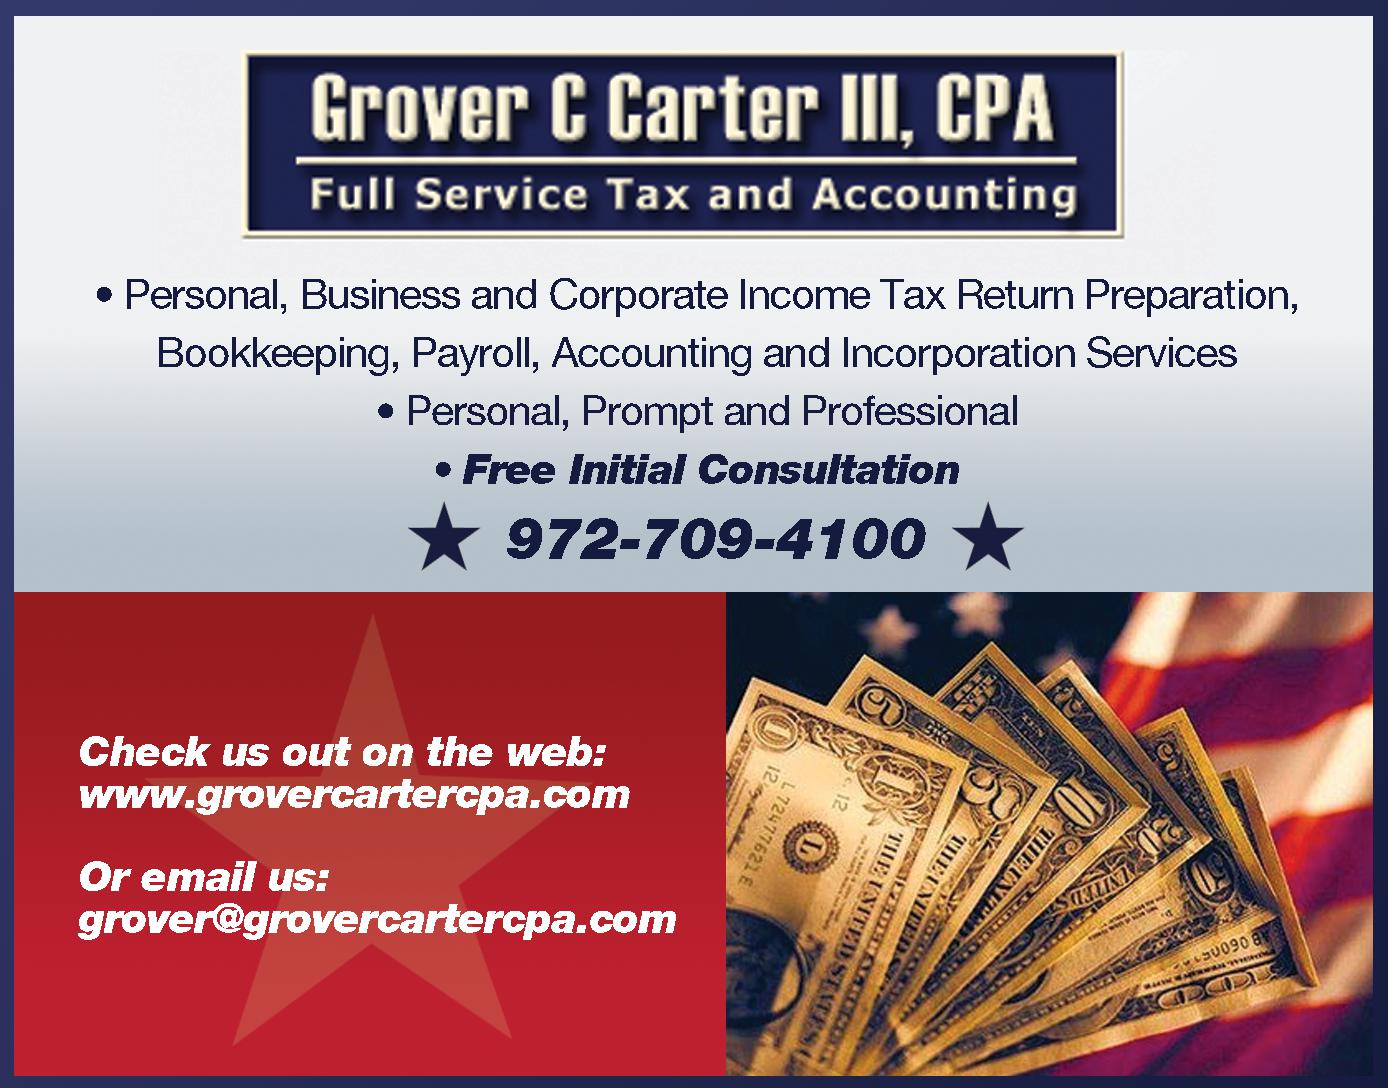 Grover Carter III, CPA PC